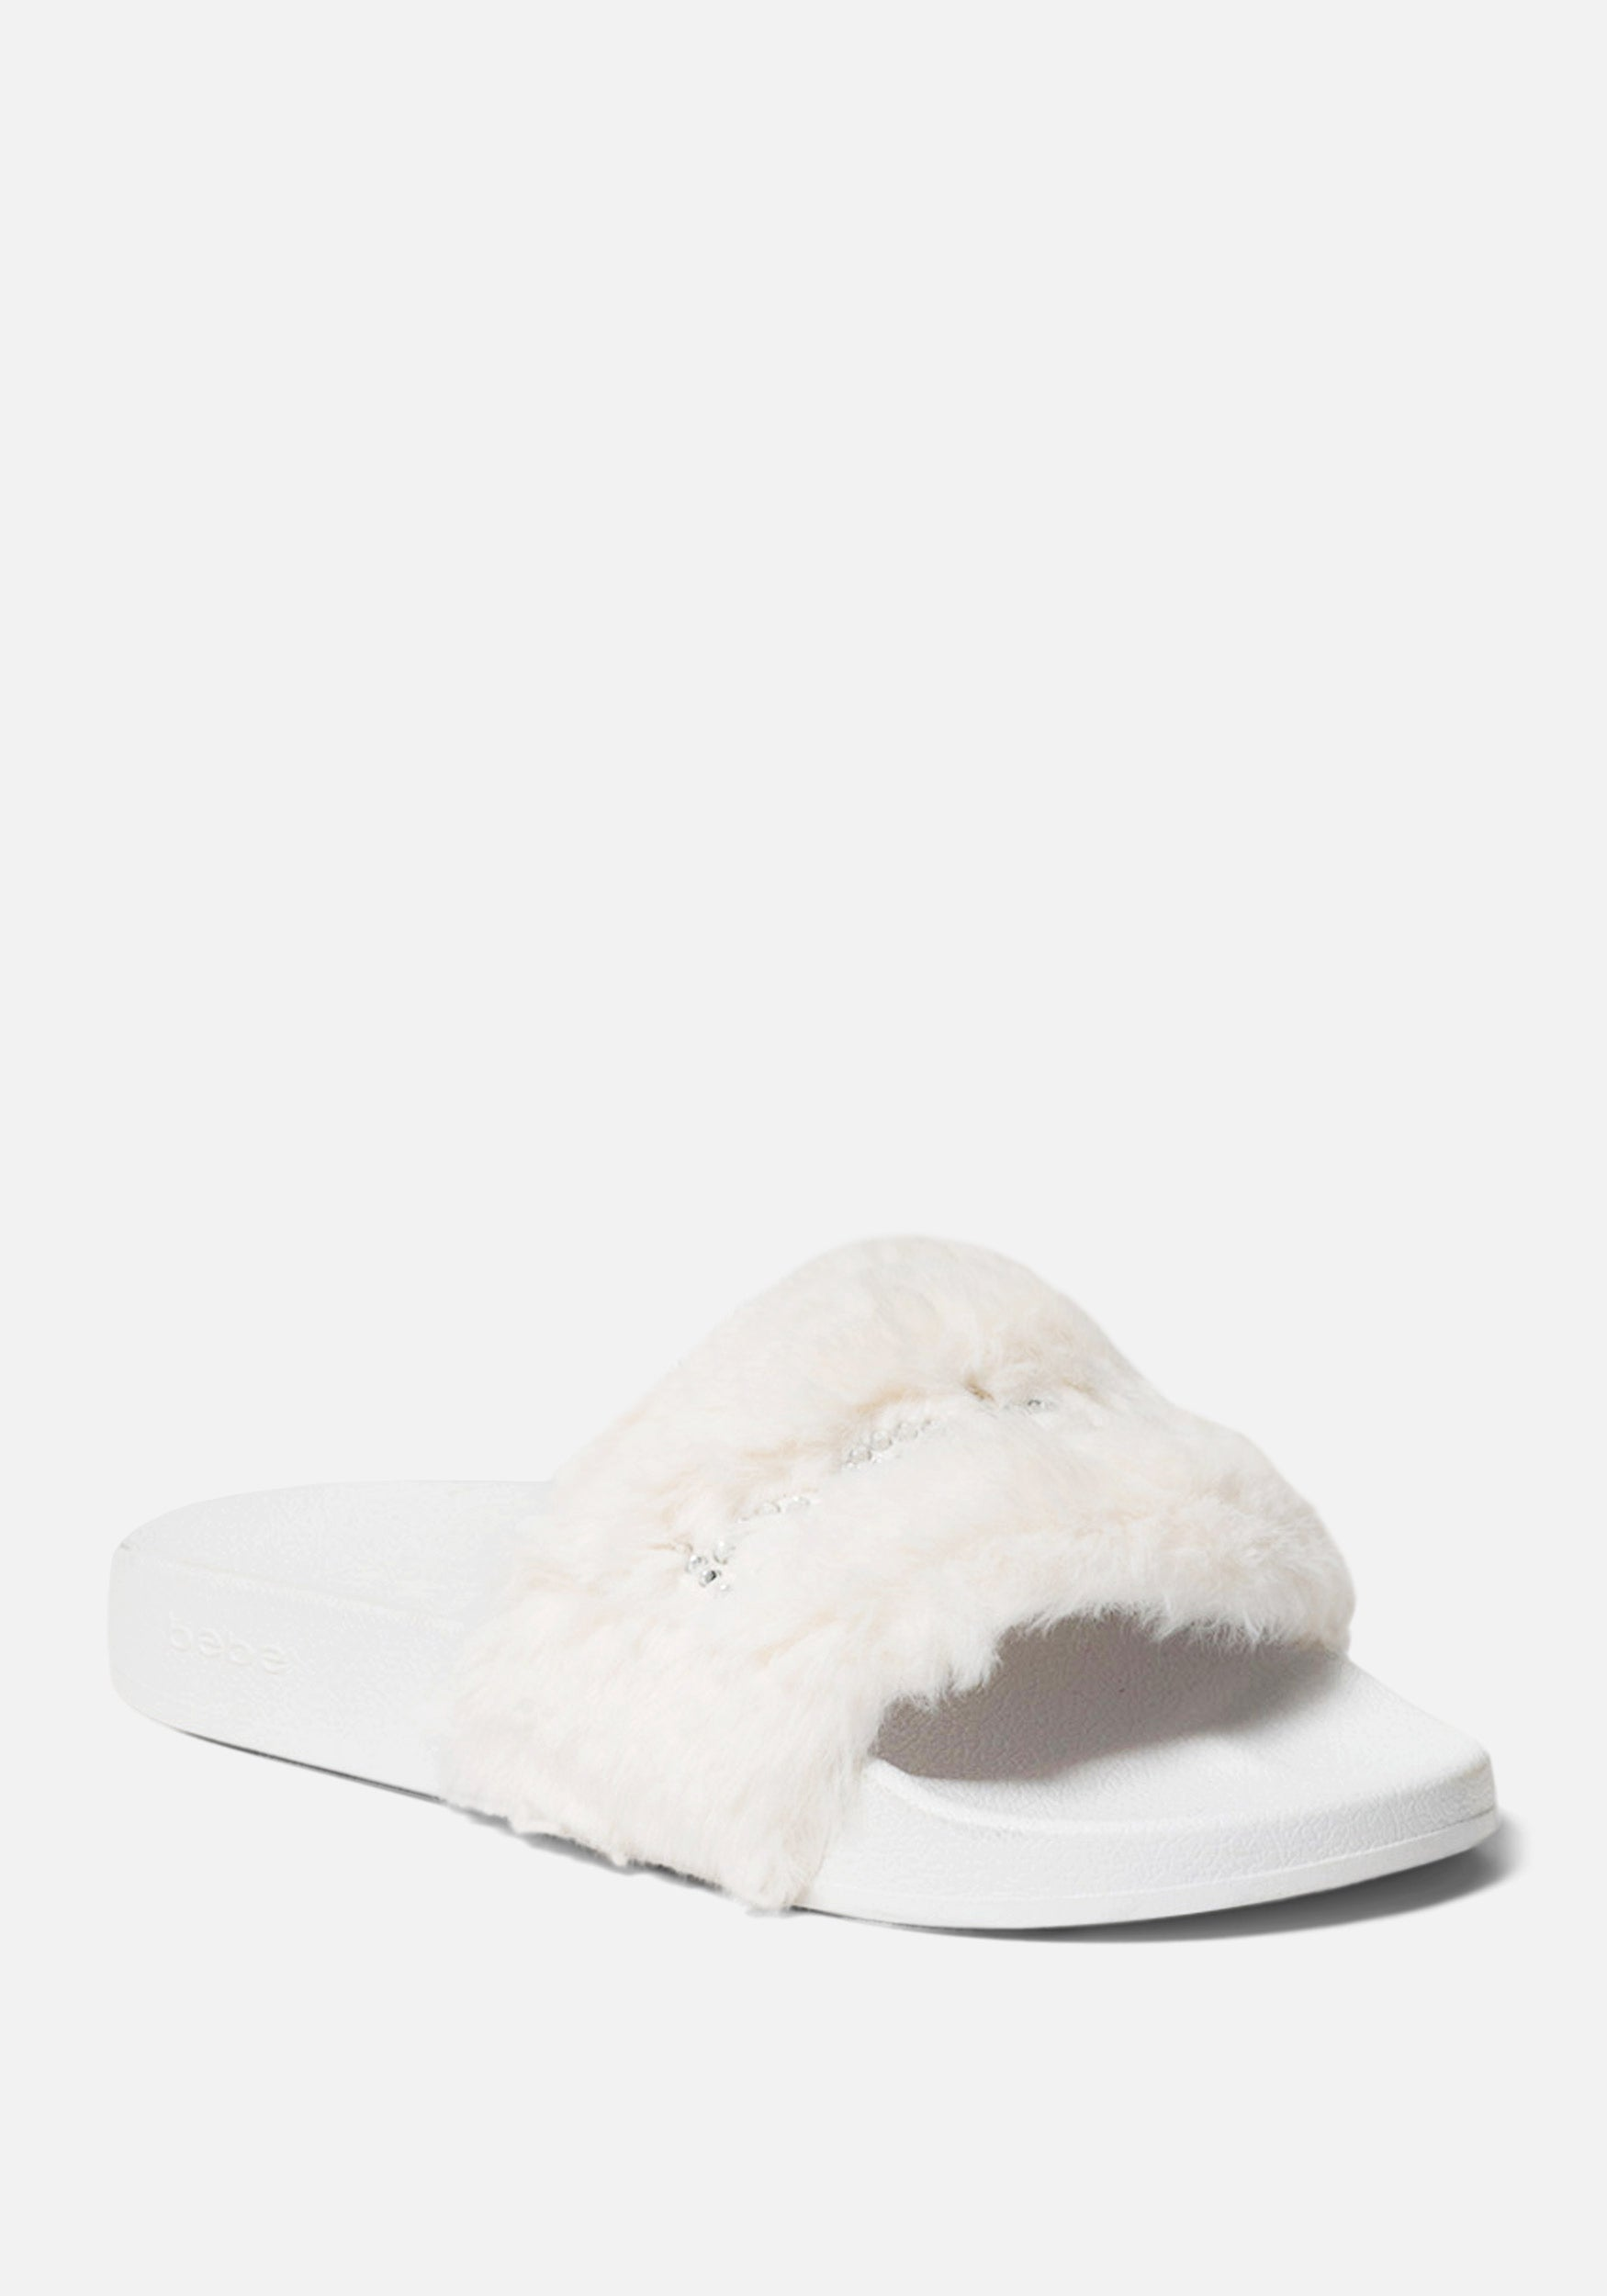 Bebe Women's Furiosa Faux Fur Slides Shoe, Size 6 in WHITE Synthetic